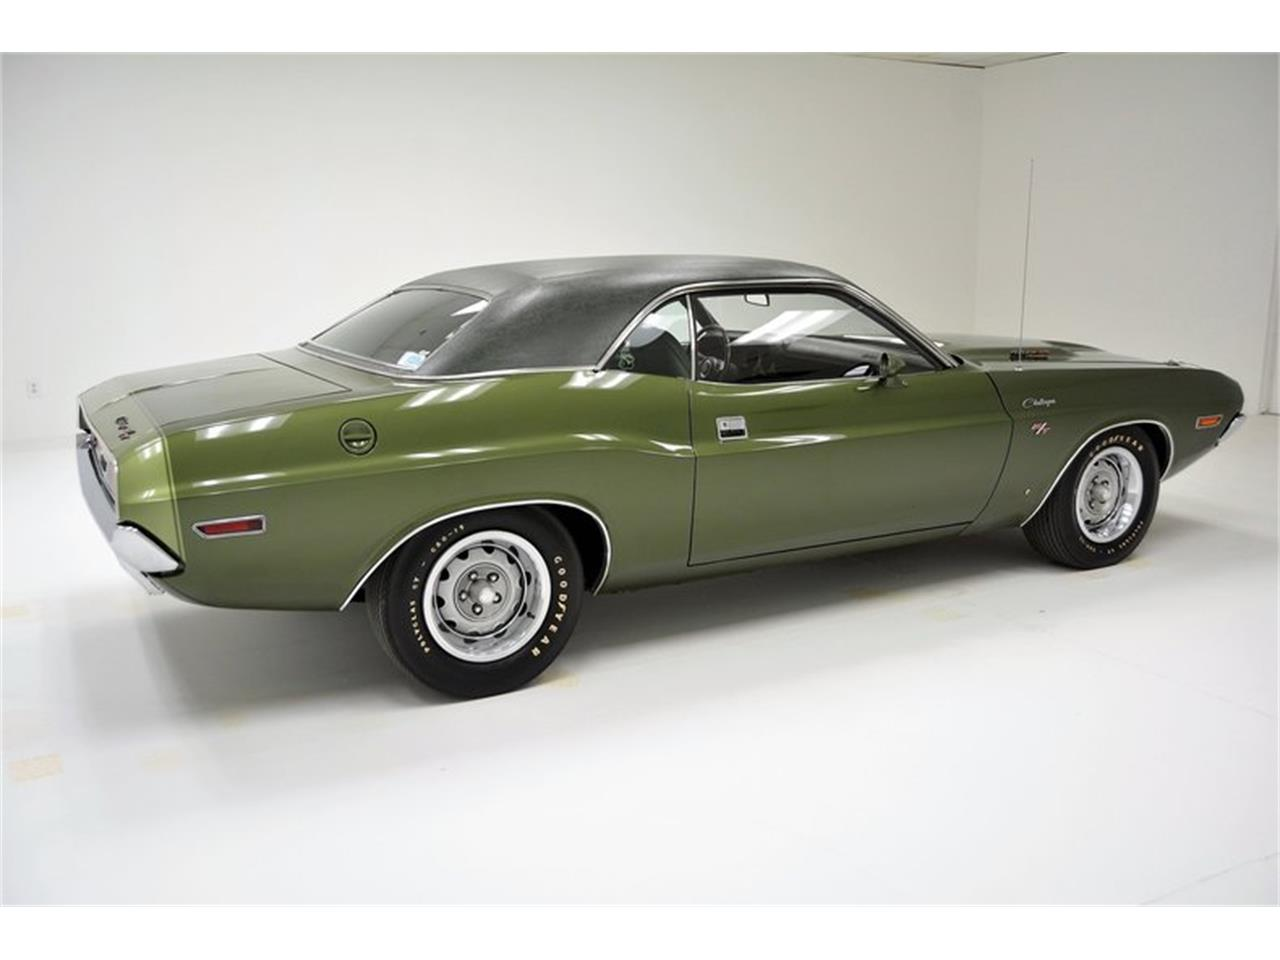 Large Picture of Classic 1970 Dodge Challenger R/T located in Morgantown Pennsylvania - $395,000.00 Offered by Classic Auto Mall - MZHE